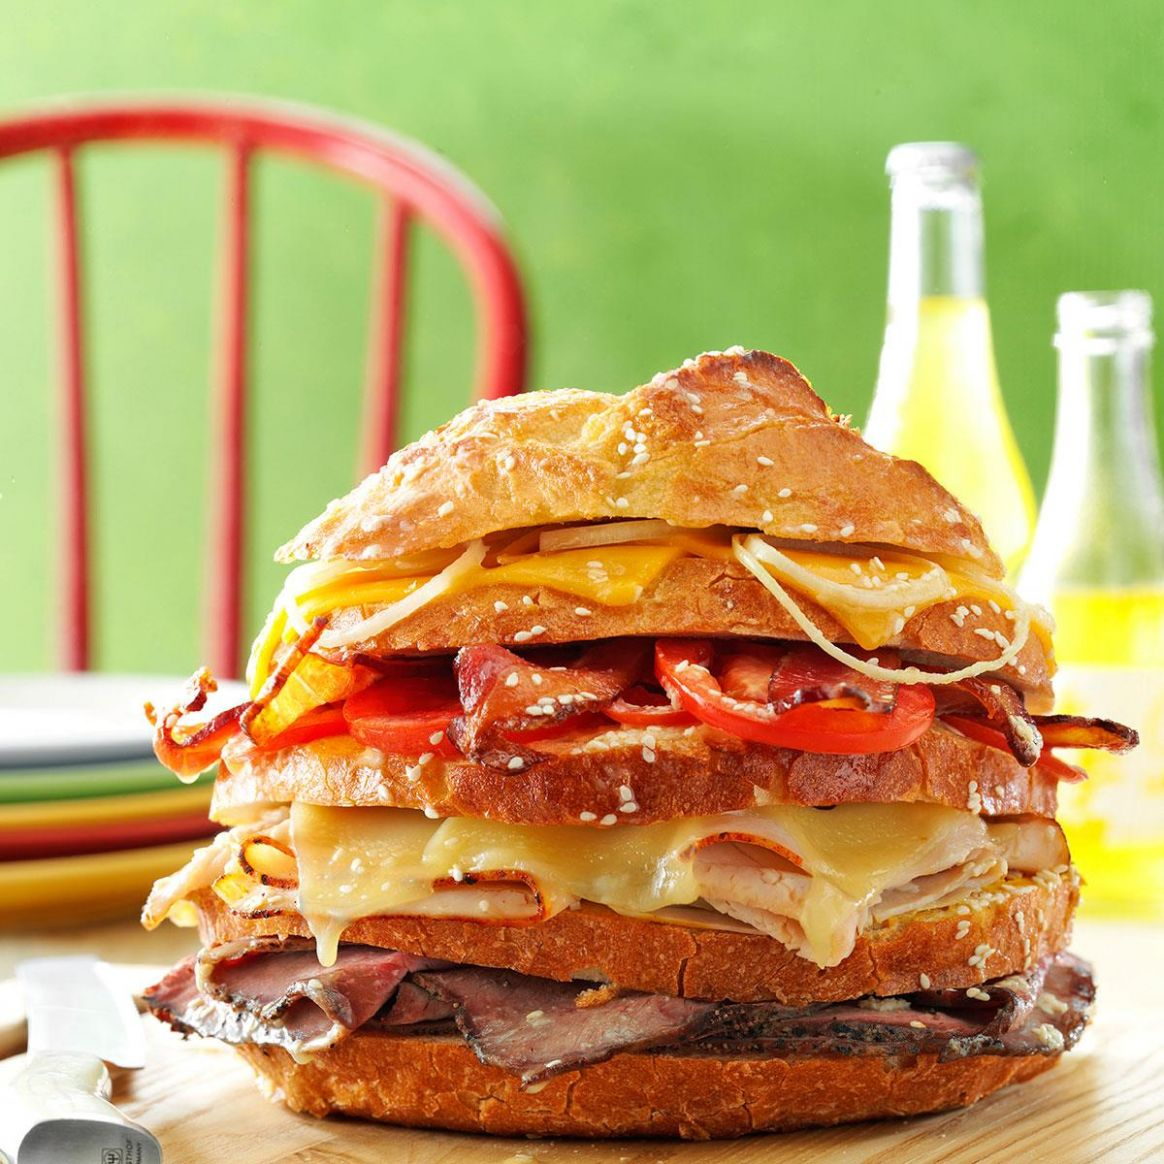 Big Sandwich - Sandwich Recipes Taste Of Home